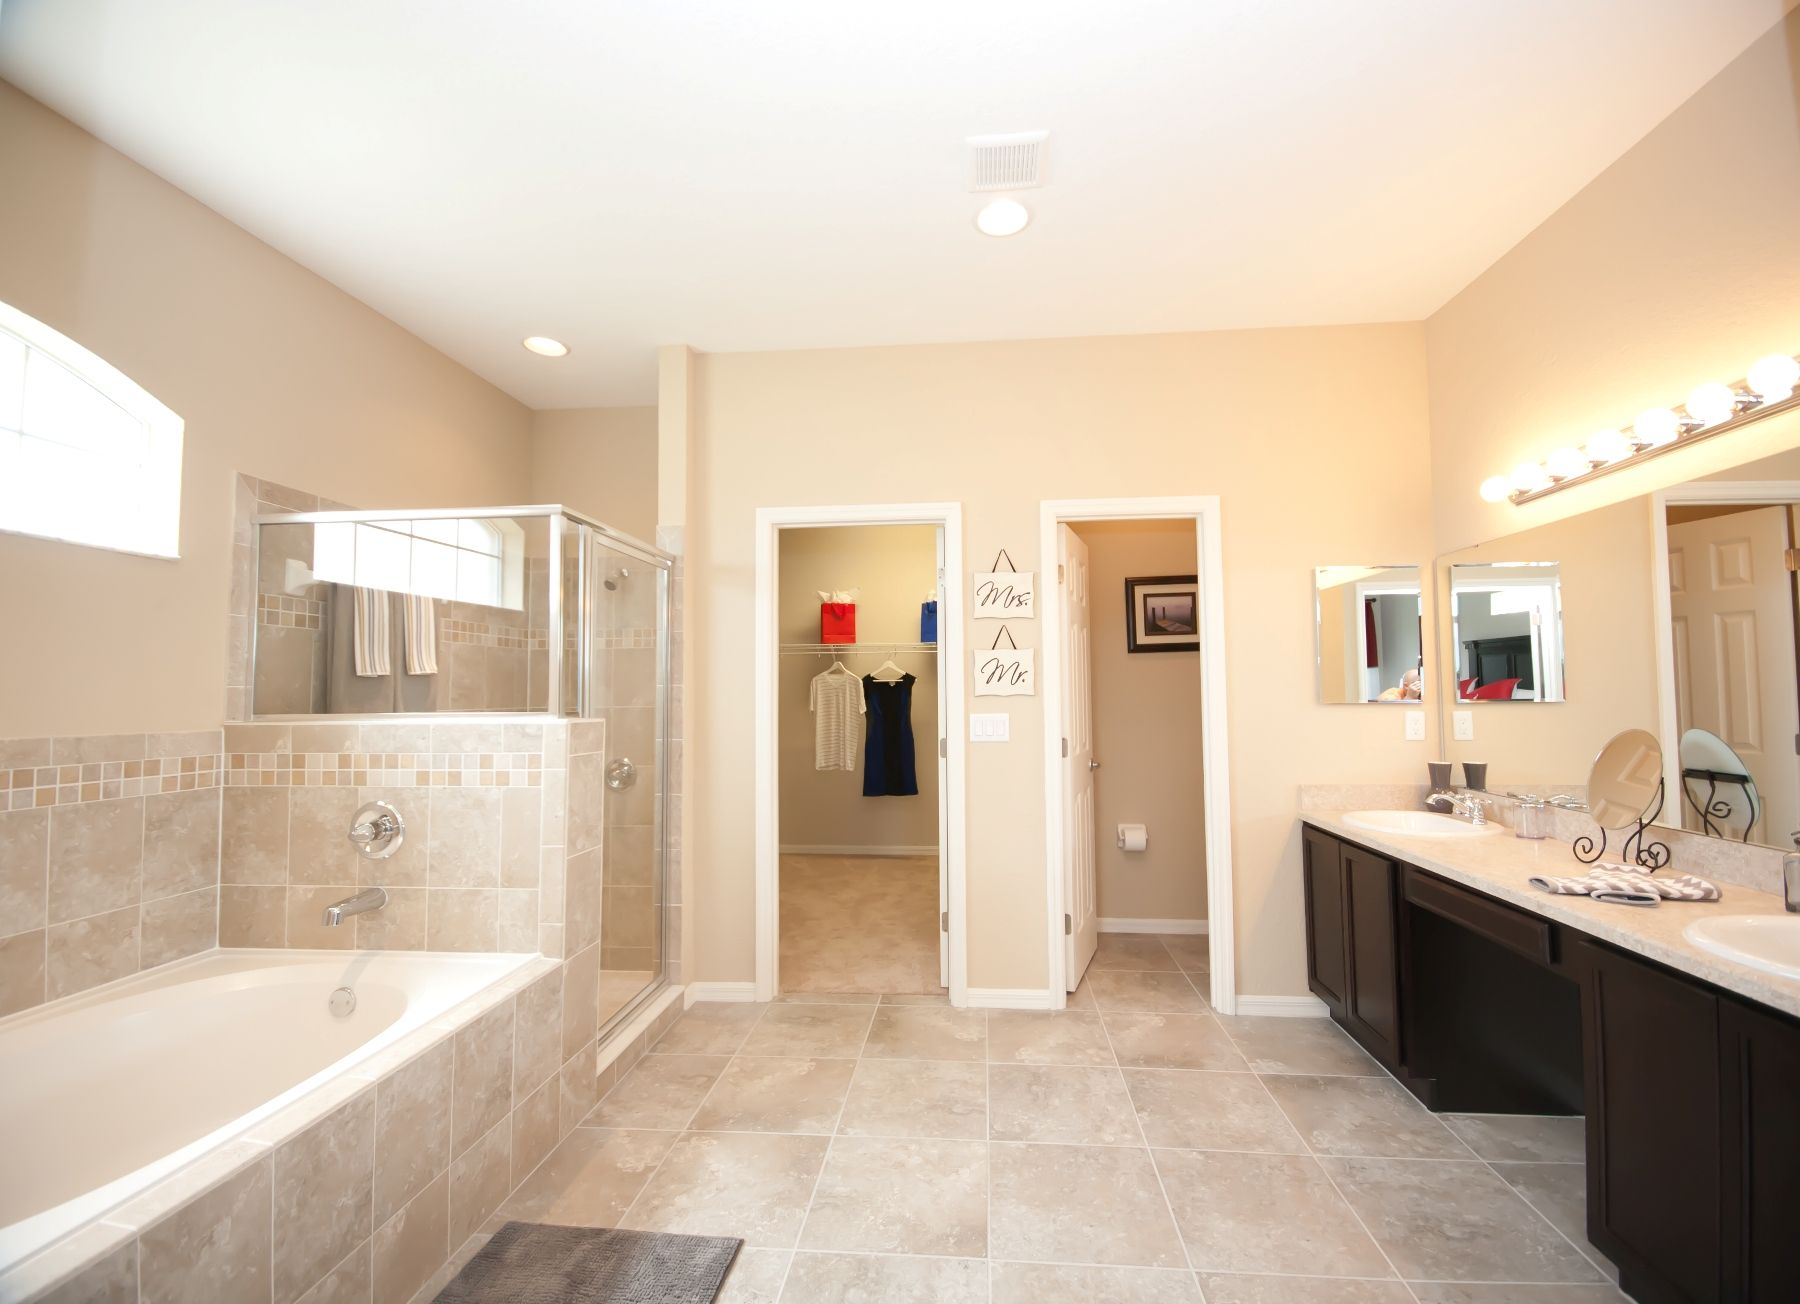 Great lighting open space and warm neutral colors make for Model home bathroom photos